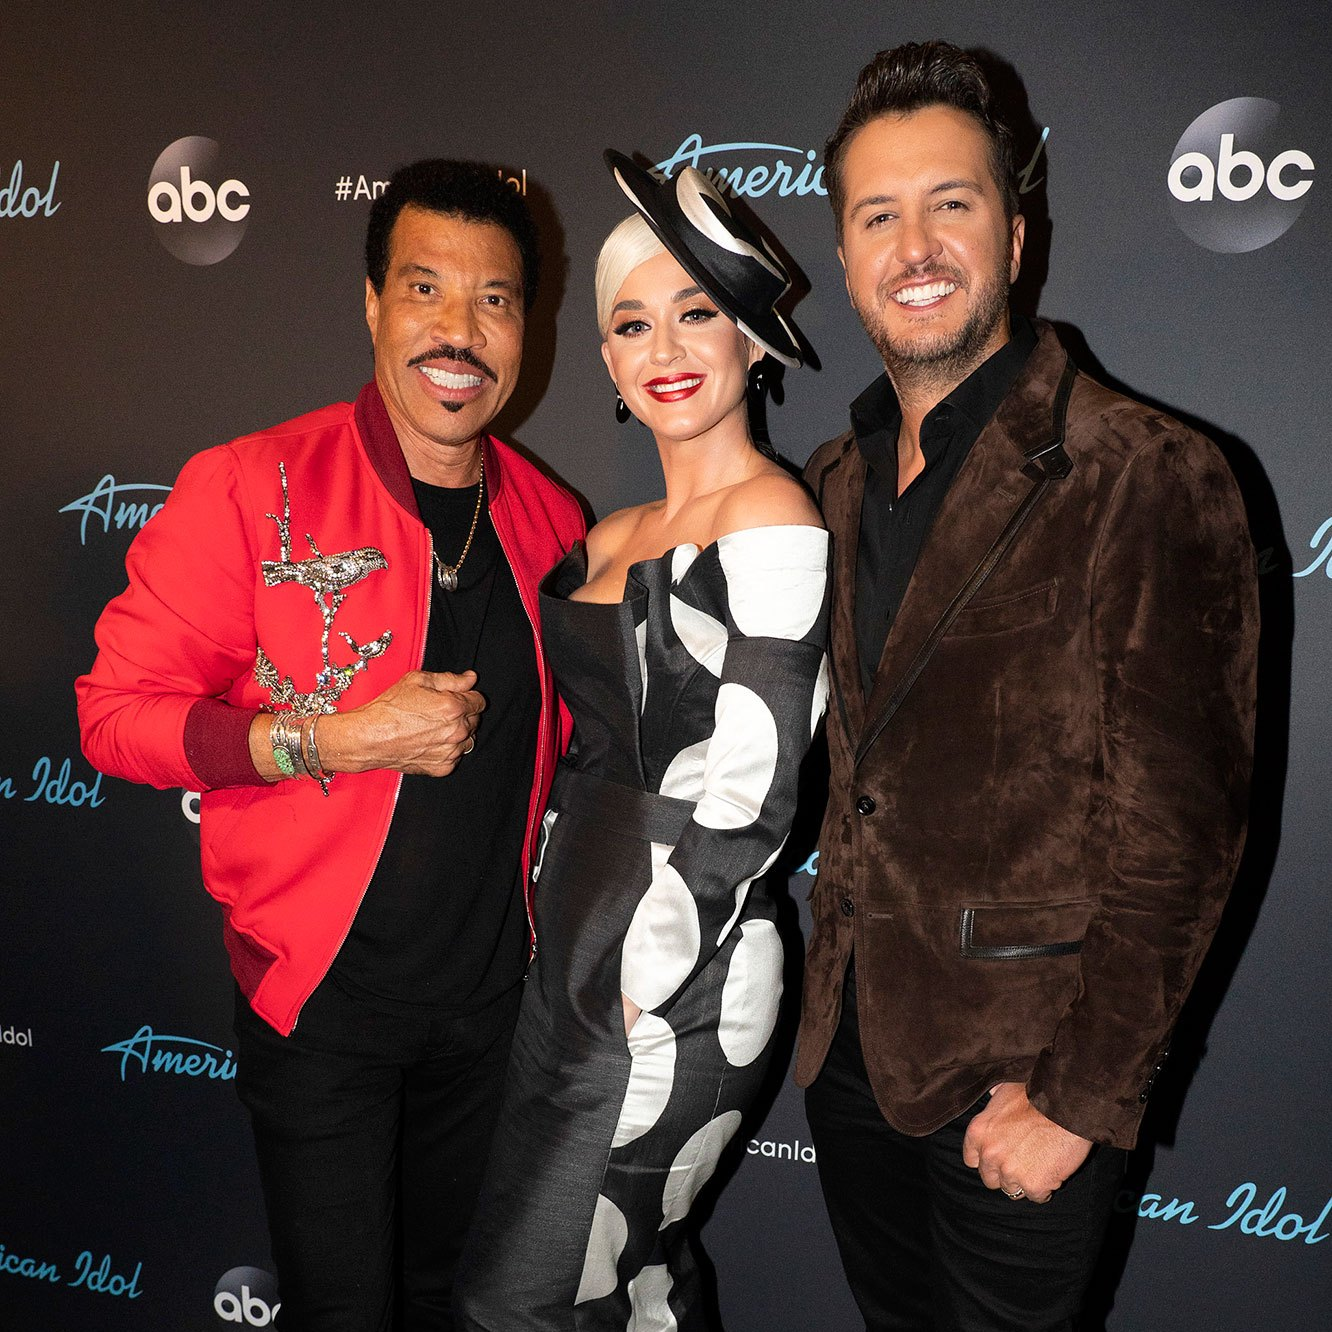 Lionel Richie, Katy Perry, and Luke Bryan Address Return for a Third Season